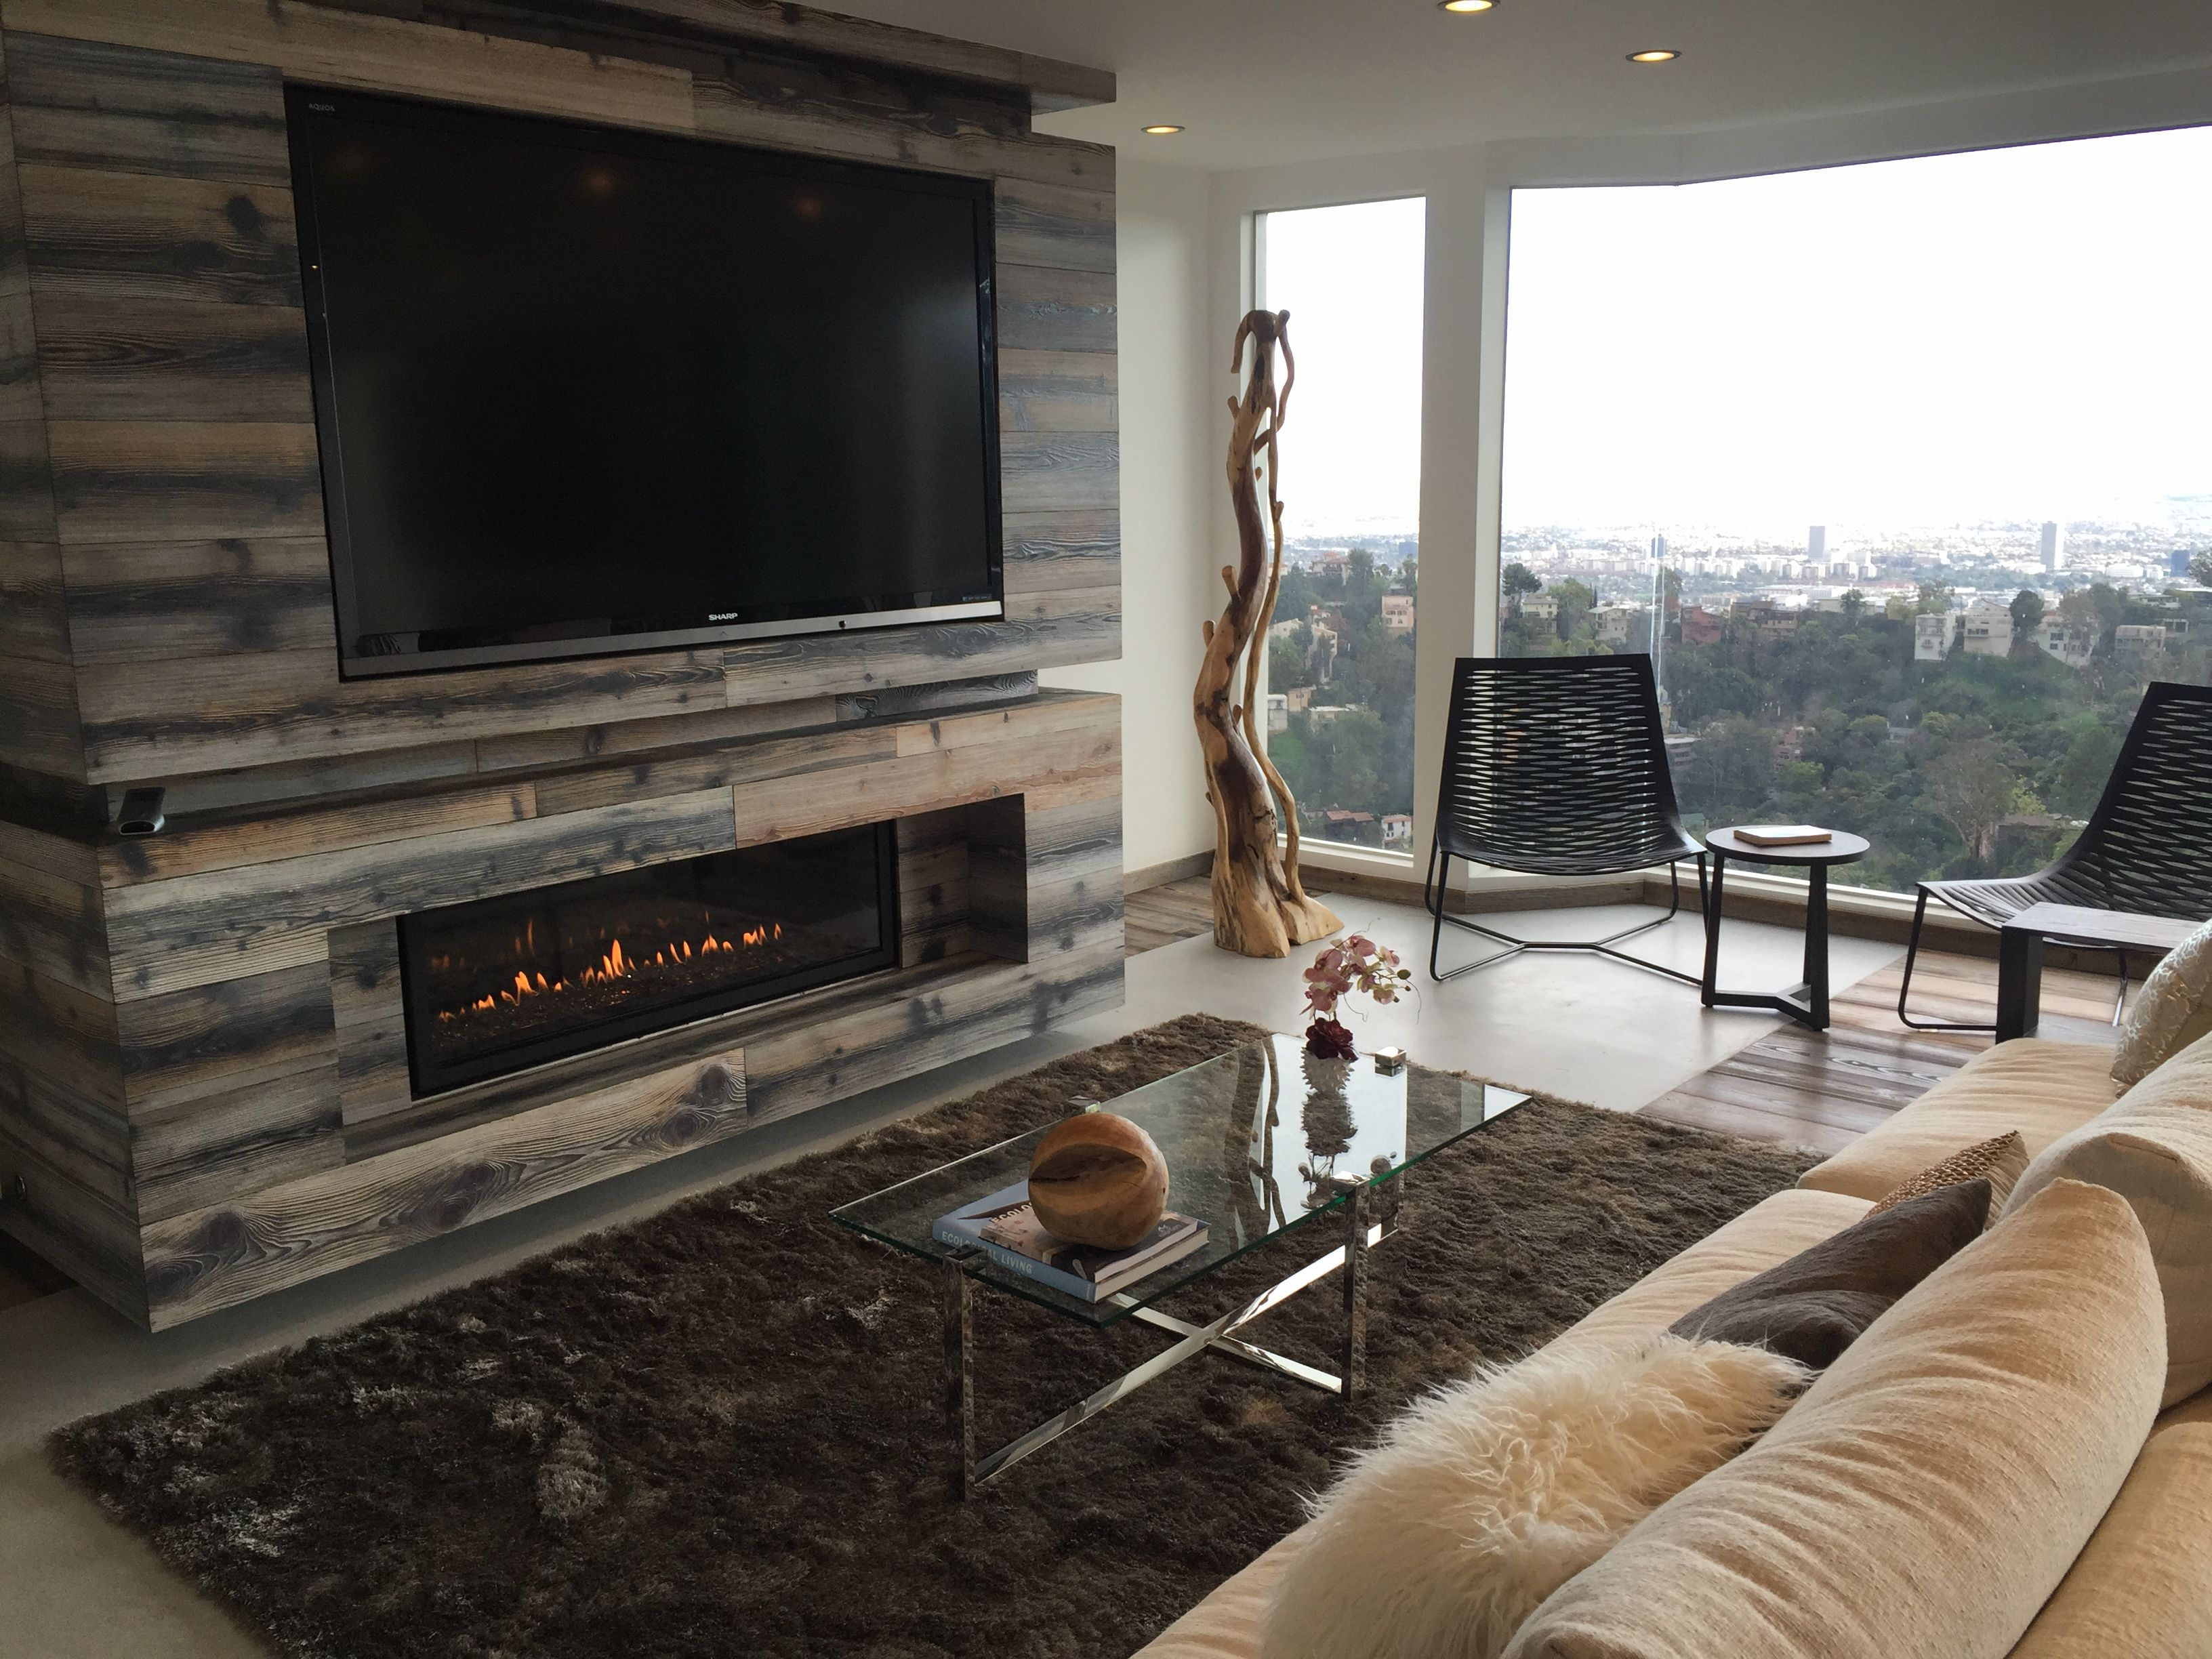 Napoleon S Lhd50 Linear Fireplace With Tv Above Contempory Wood